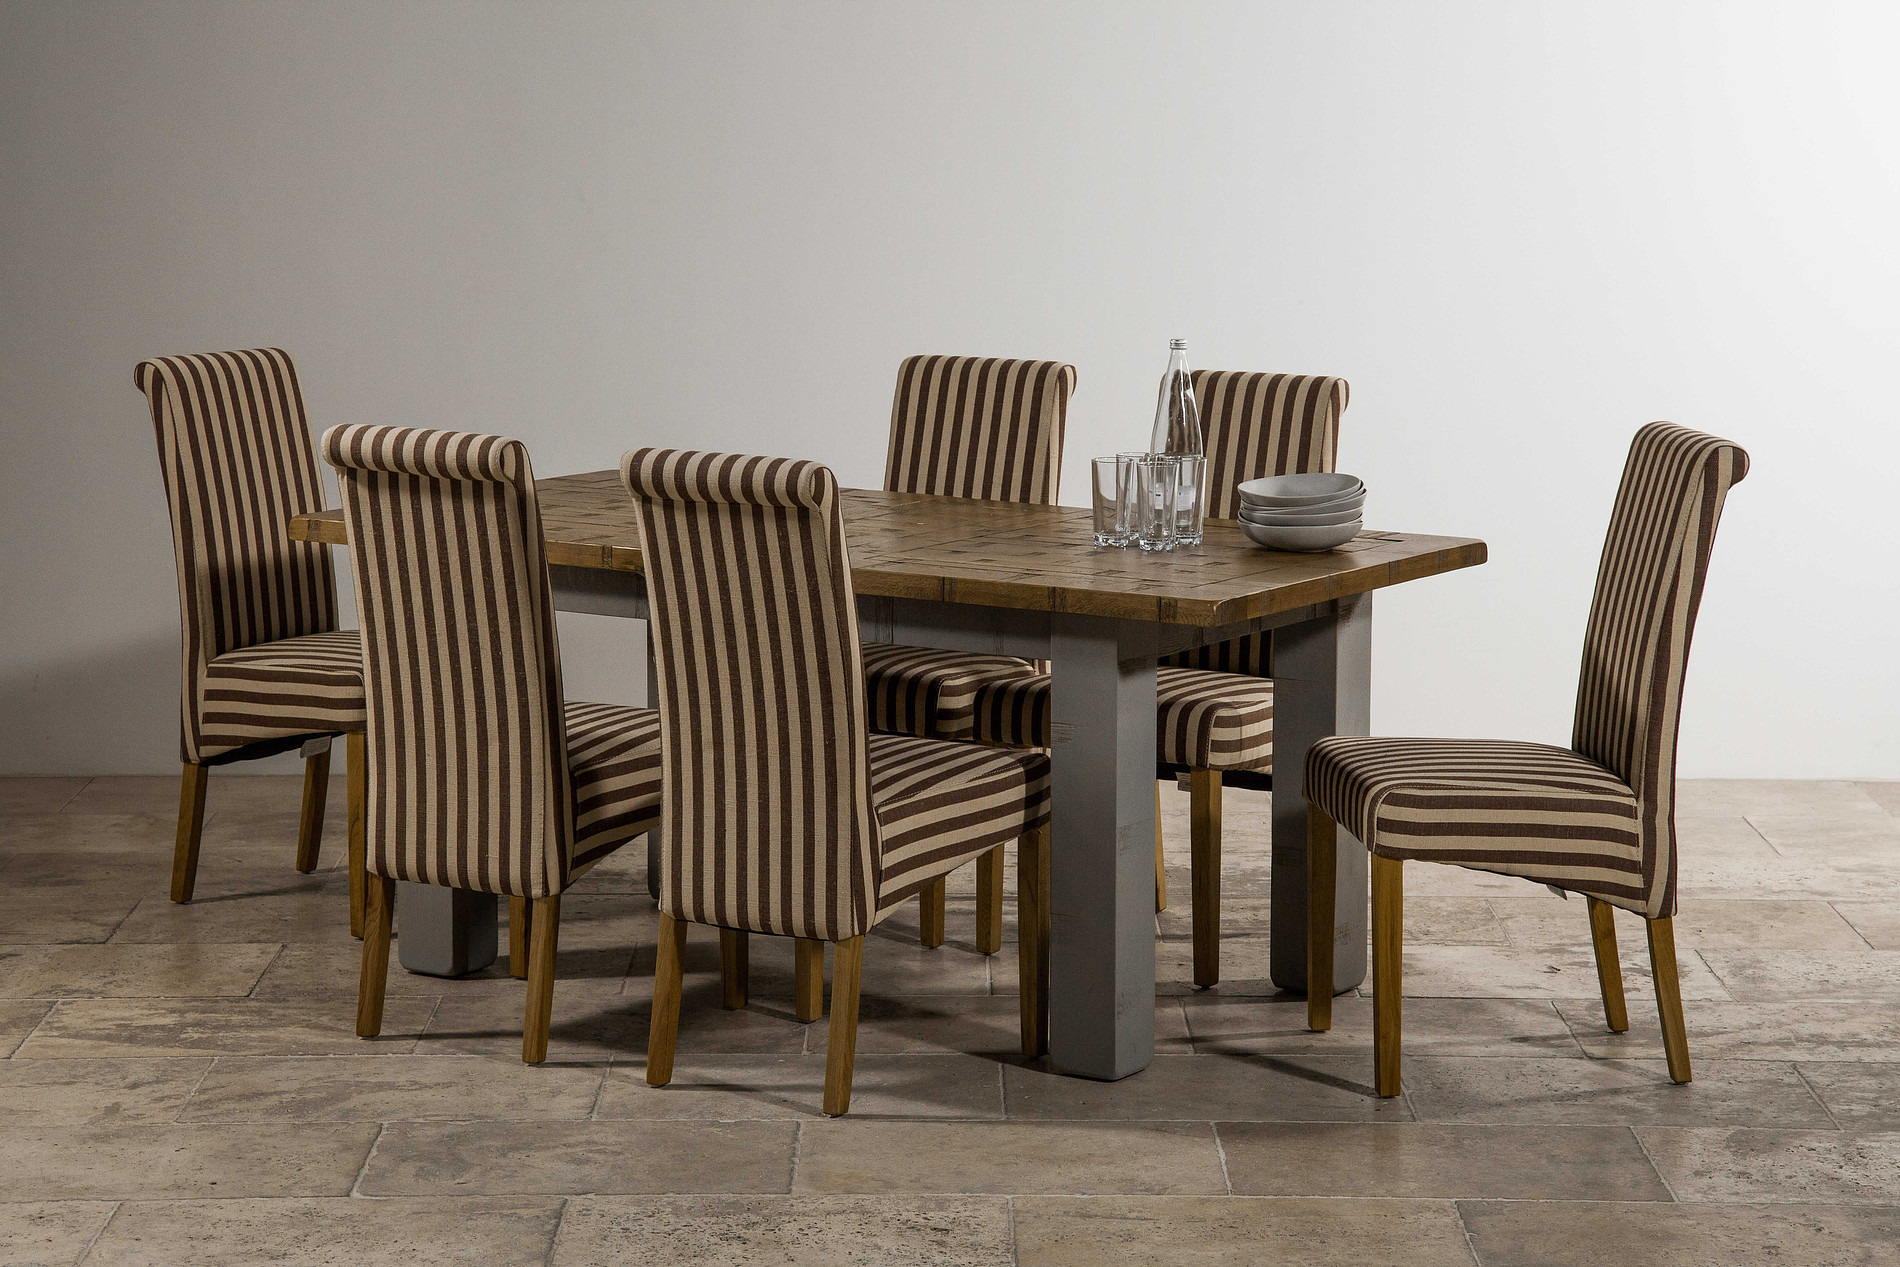 Clermont Painted Rough Sawn Solid Oak 5ft x 3ft Small  : clermont painted rough sawn solid oak 5ft x 3ft small extending dining table 6 scroll back striped brown fabric chair with solid oak legs 546dc974d4cce from oakfurnitureland.co.uk size 1900 x 1267 jpeg 661kB